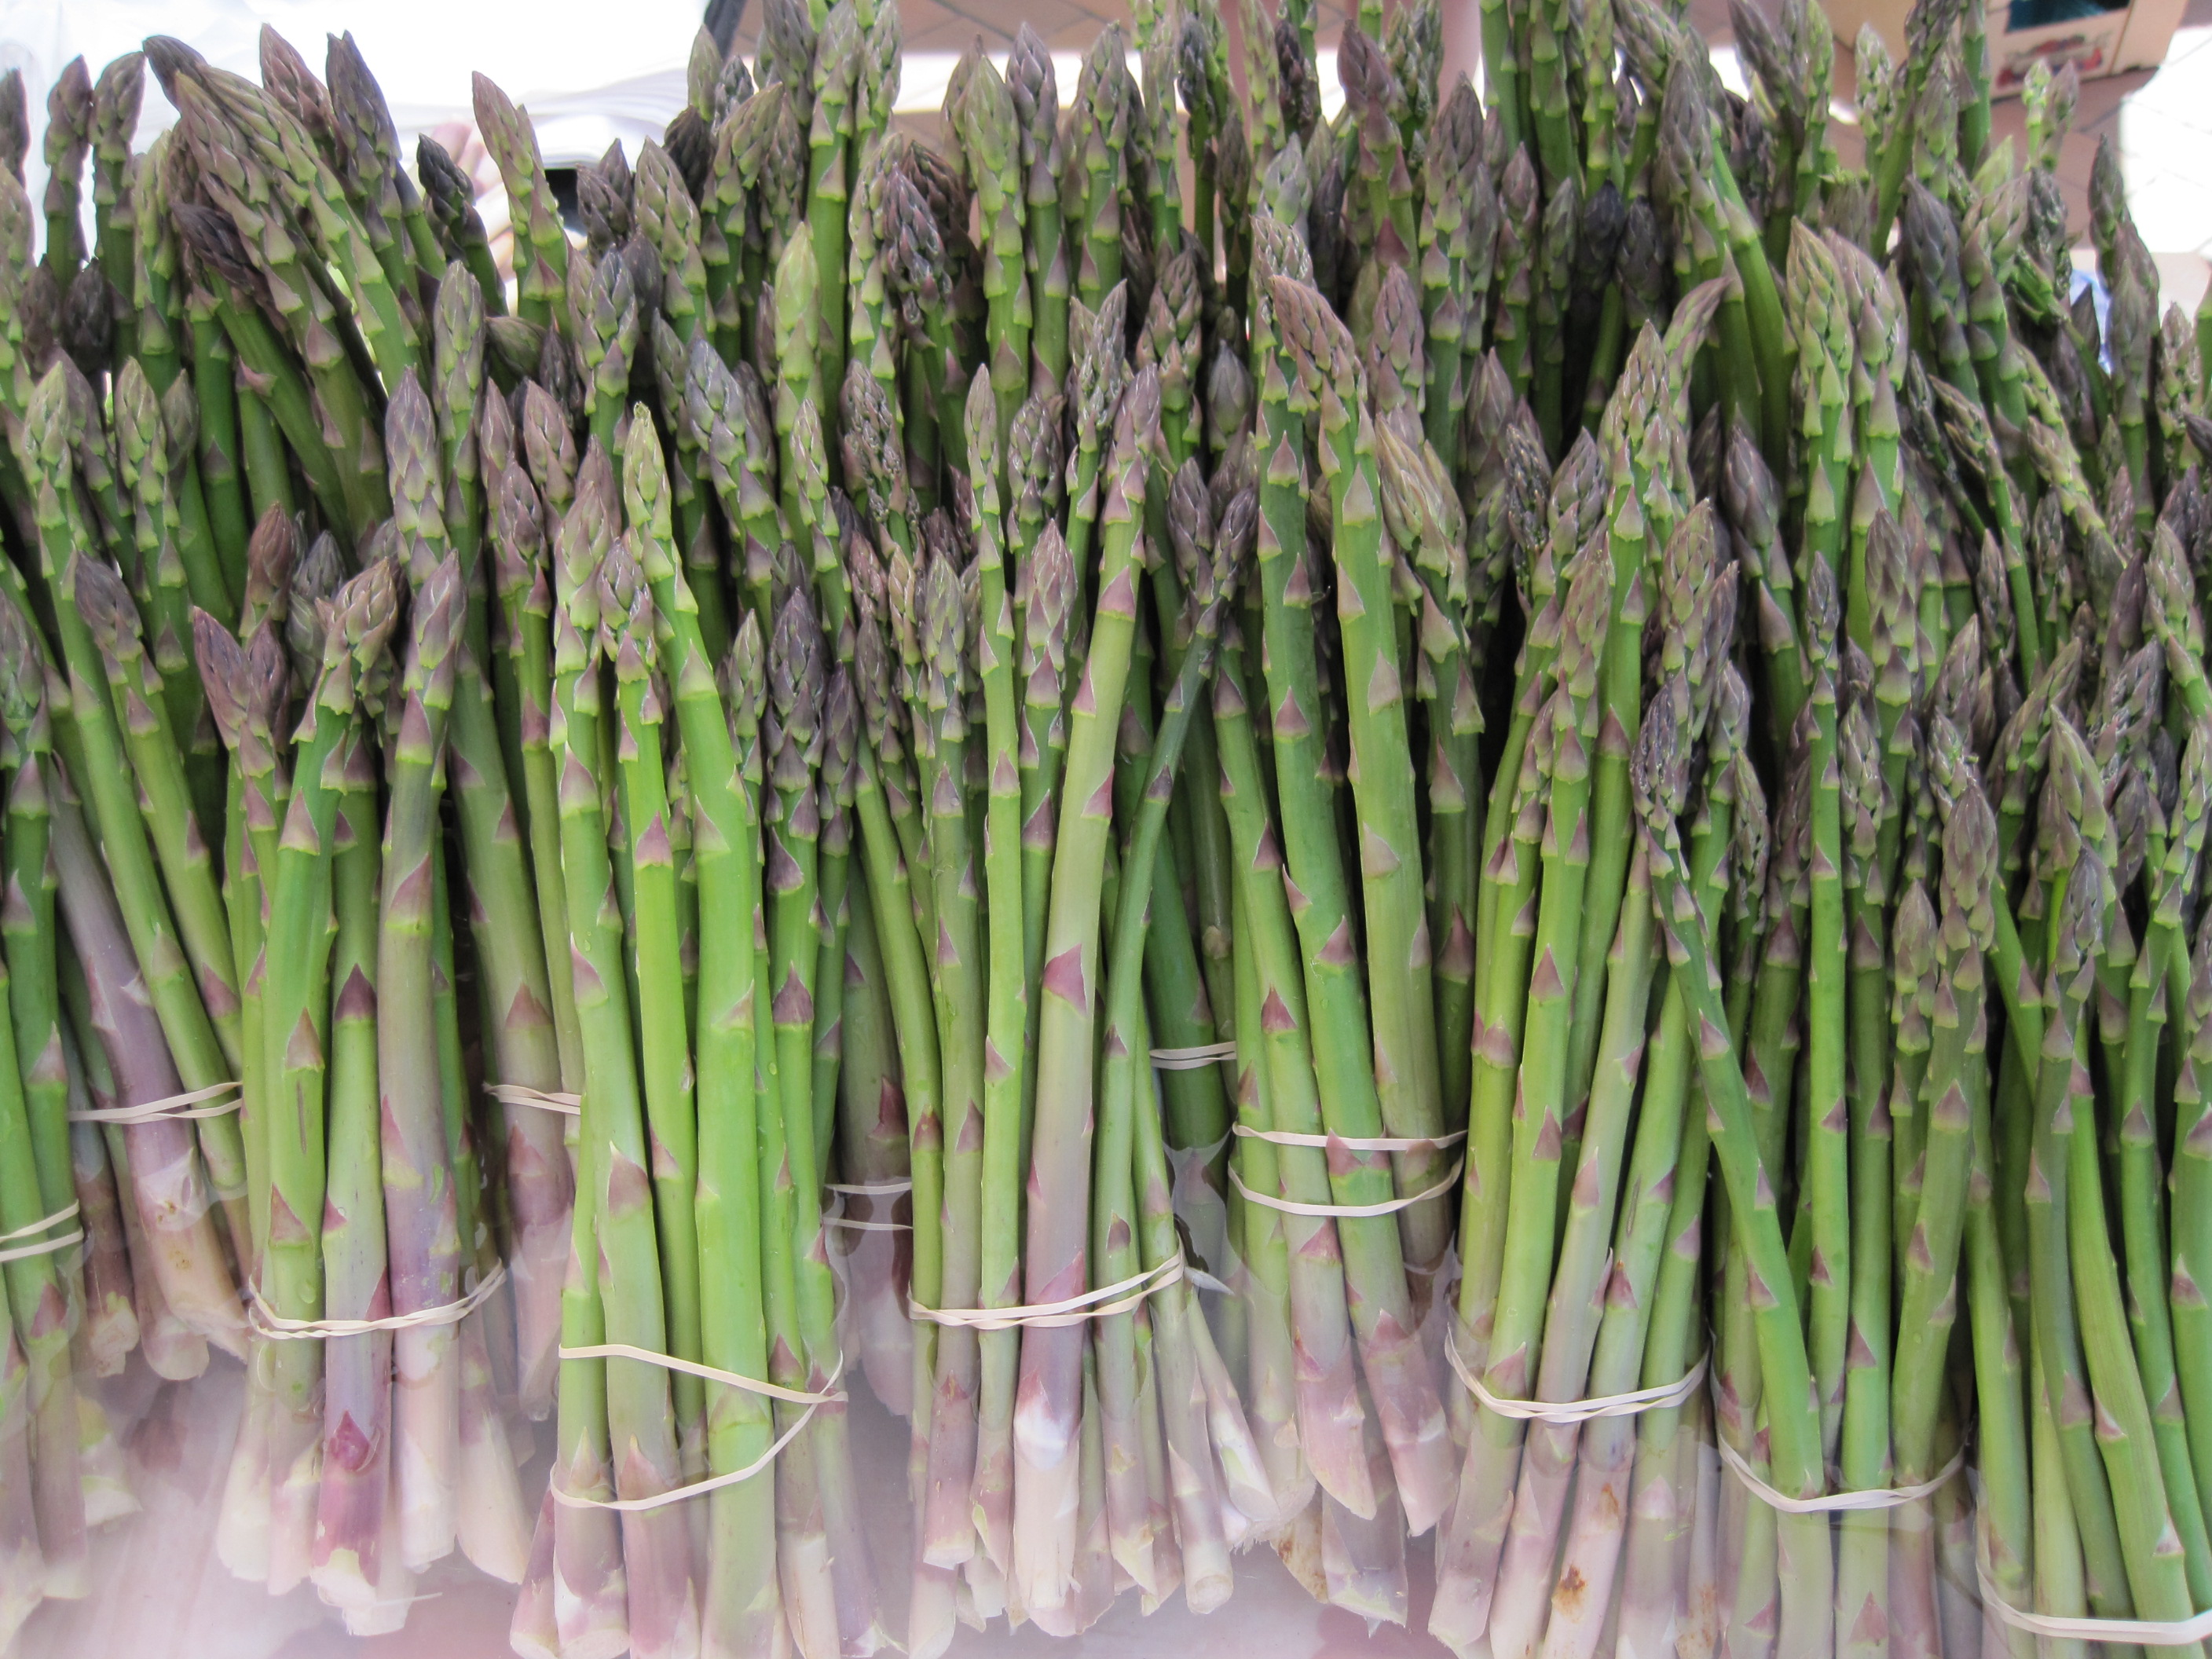 how to eat asparagus for cancer